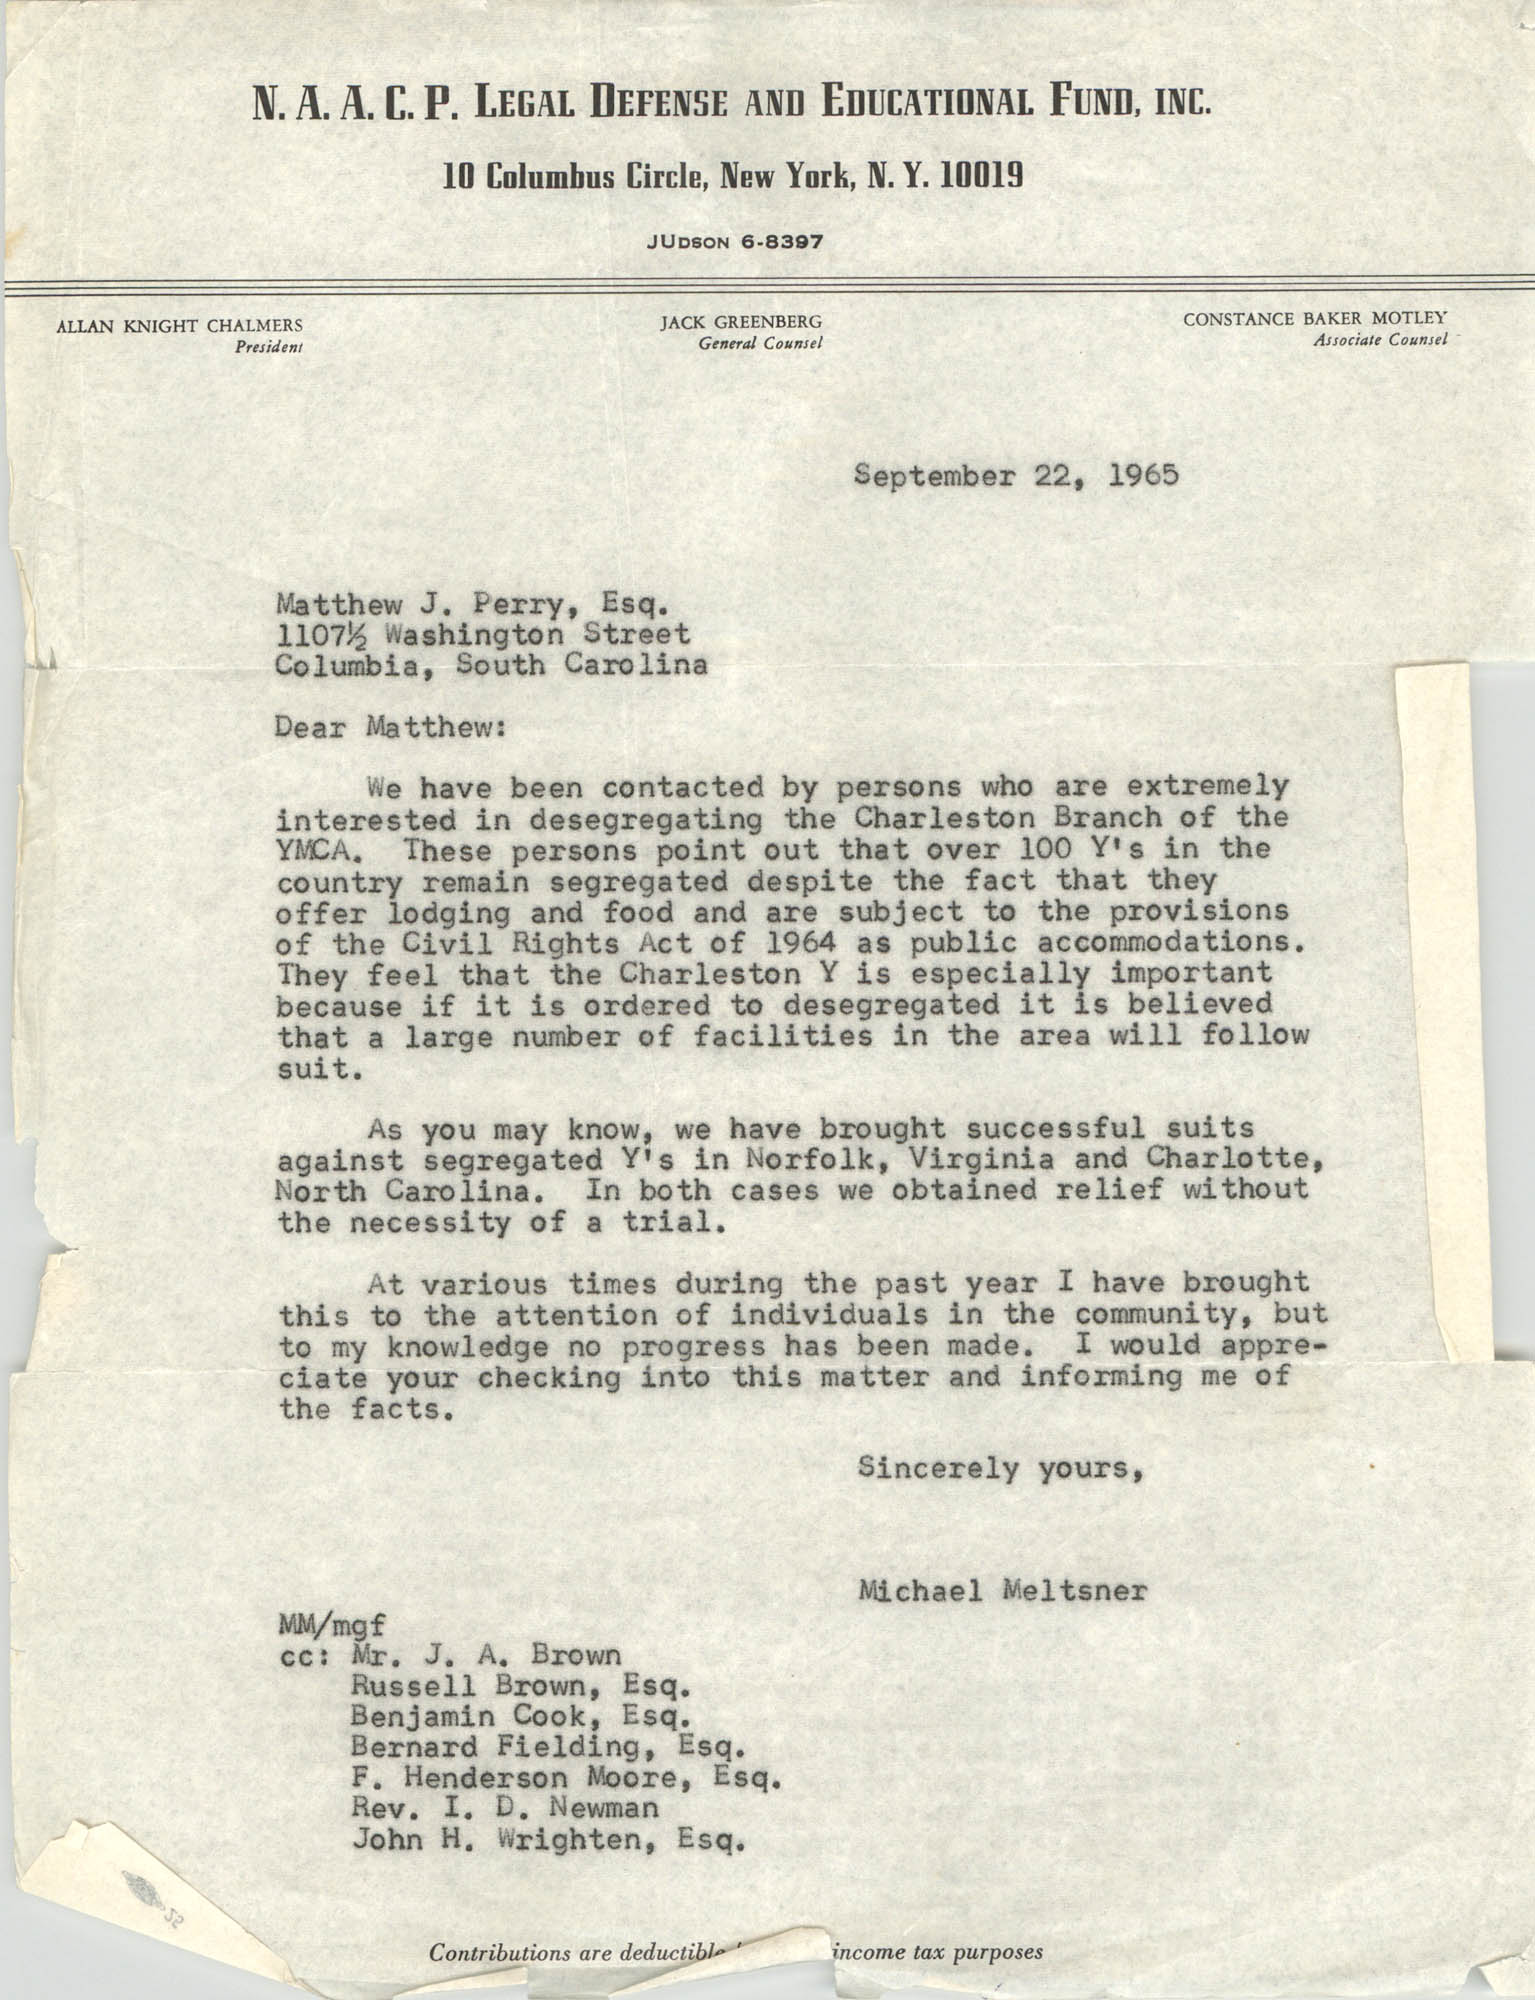 Letter from Michael Meltsner to Matthew J. Perry, September 22, 1965